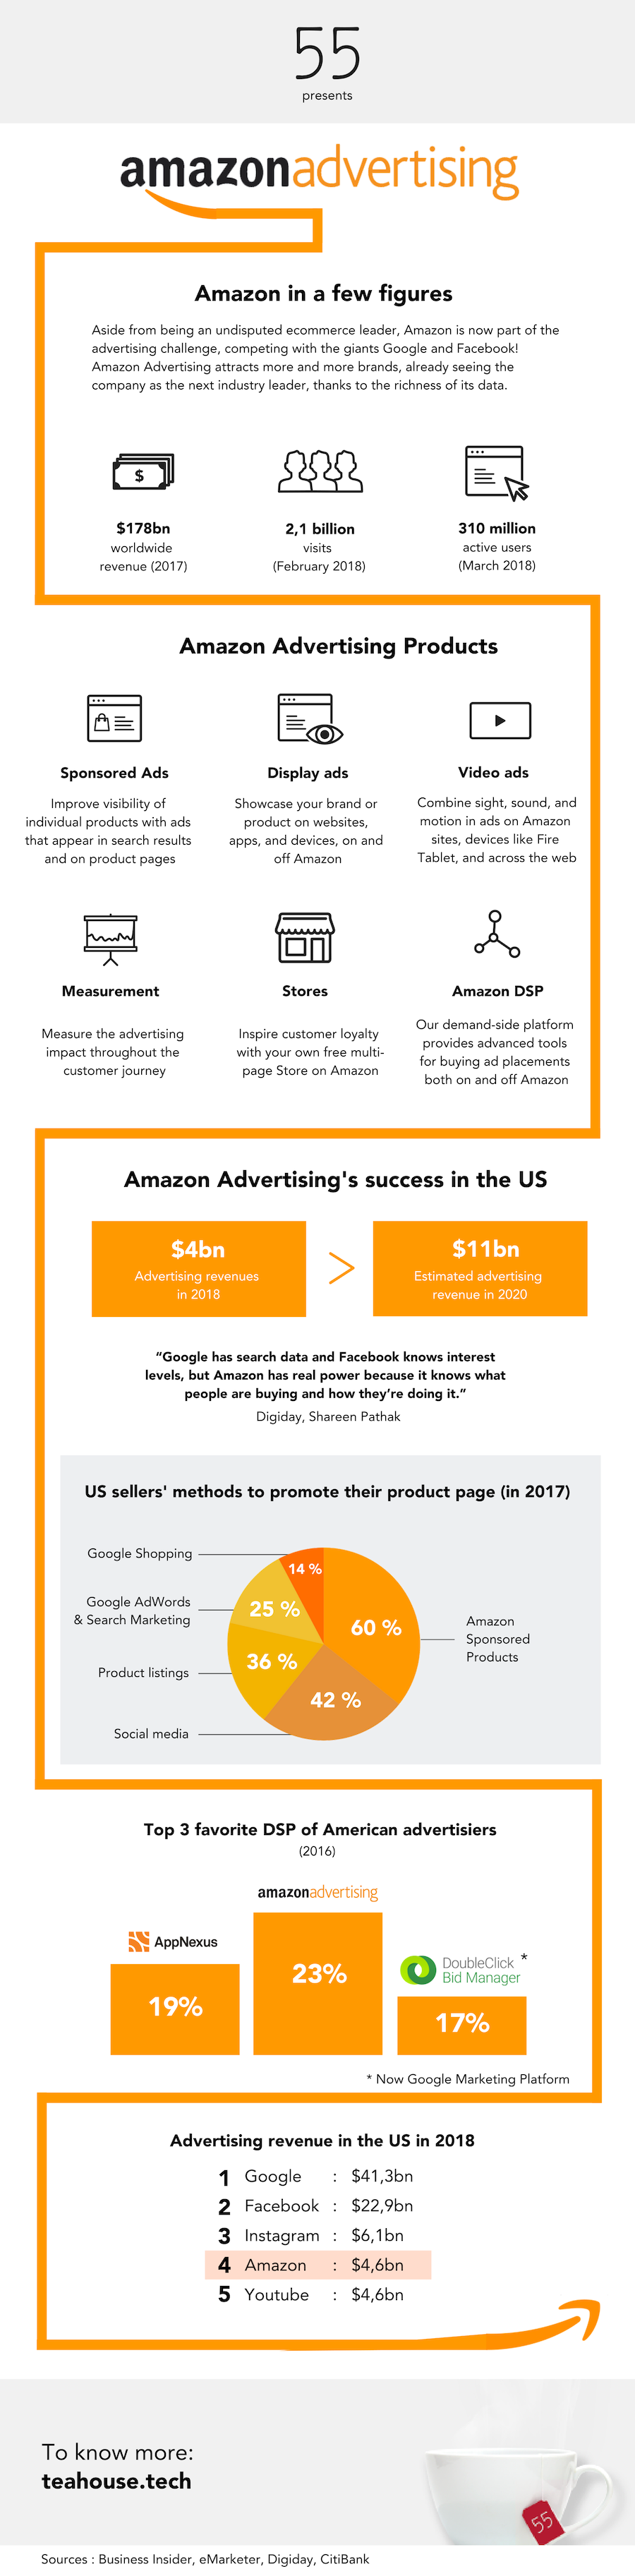 amazon-advertising-infographic